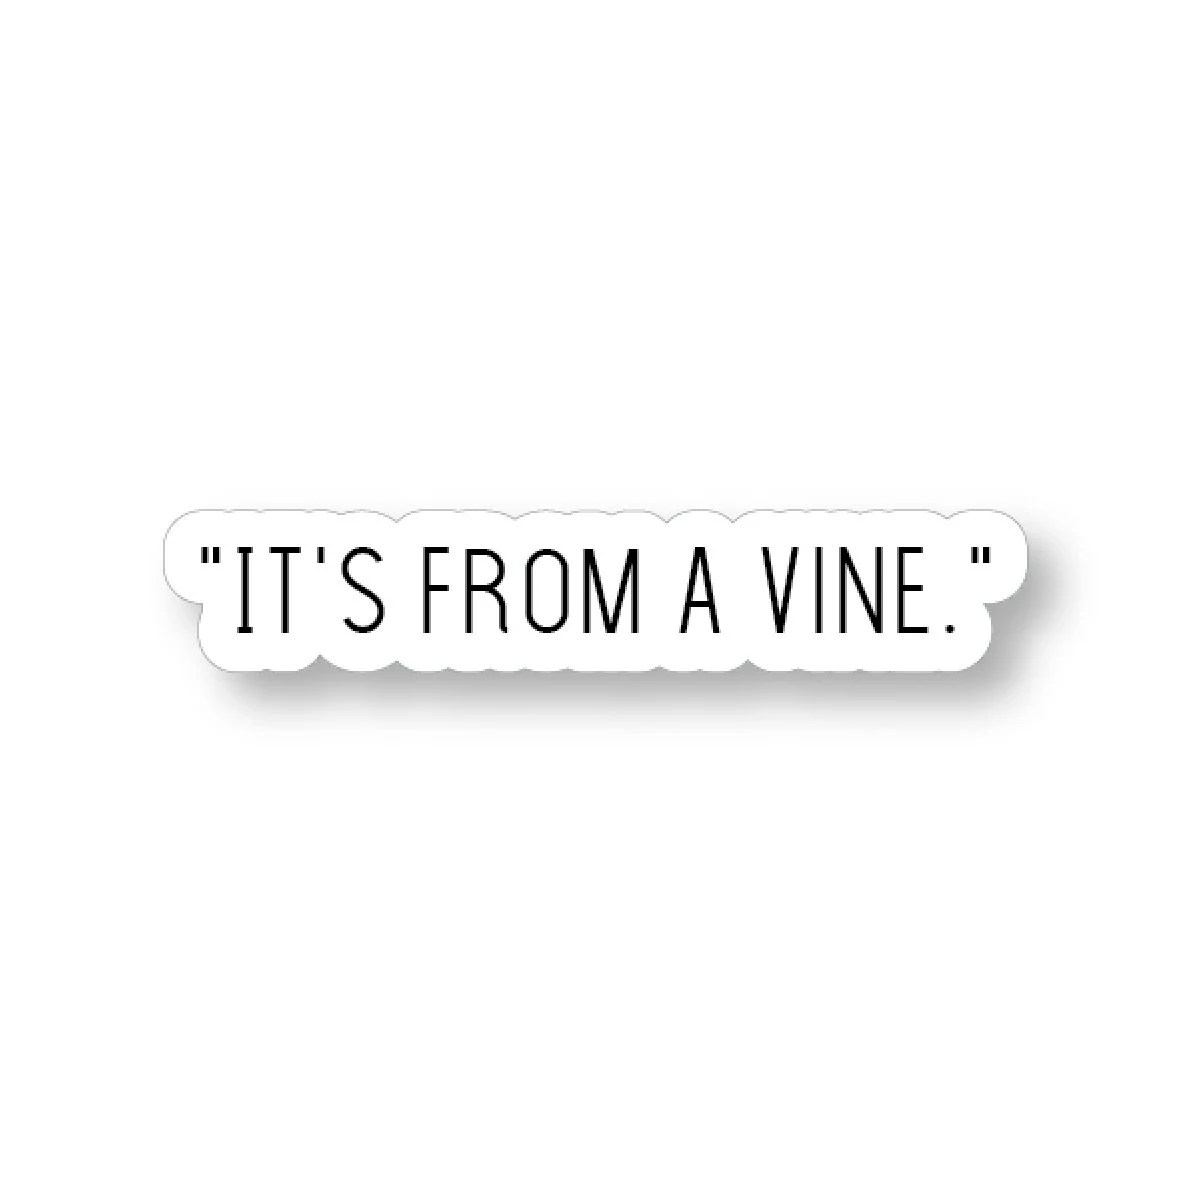 Vine sticker Fun Cute Positive Laptop Stickers Typography